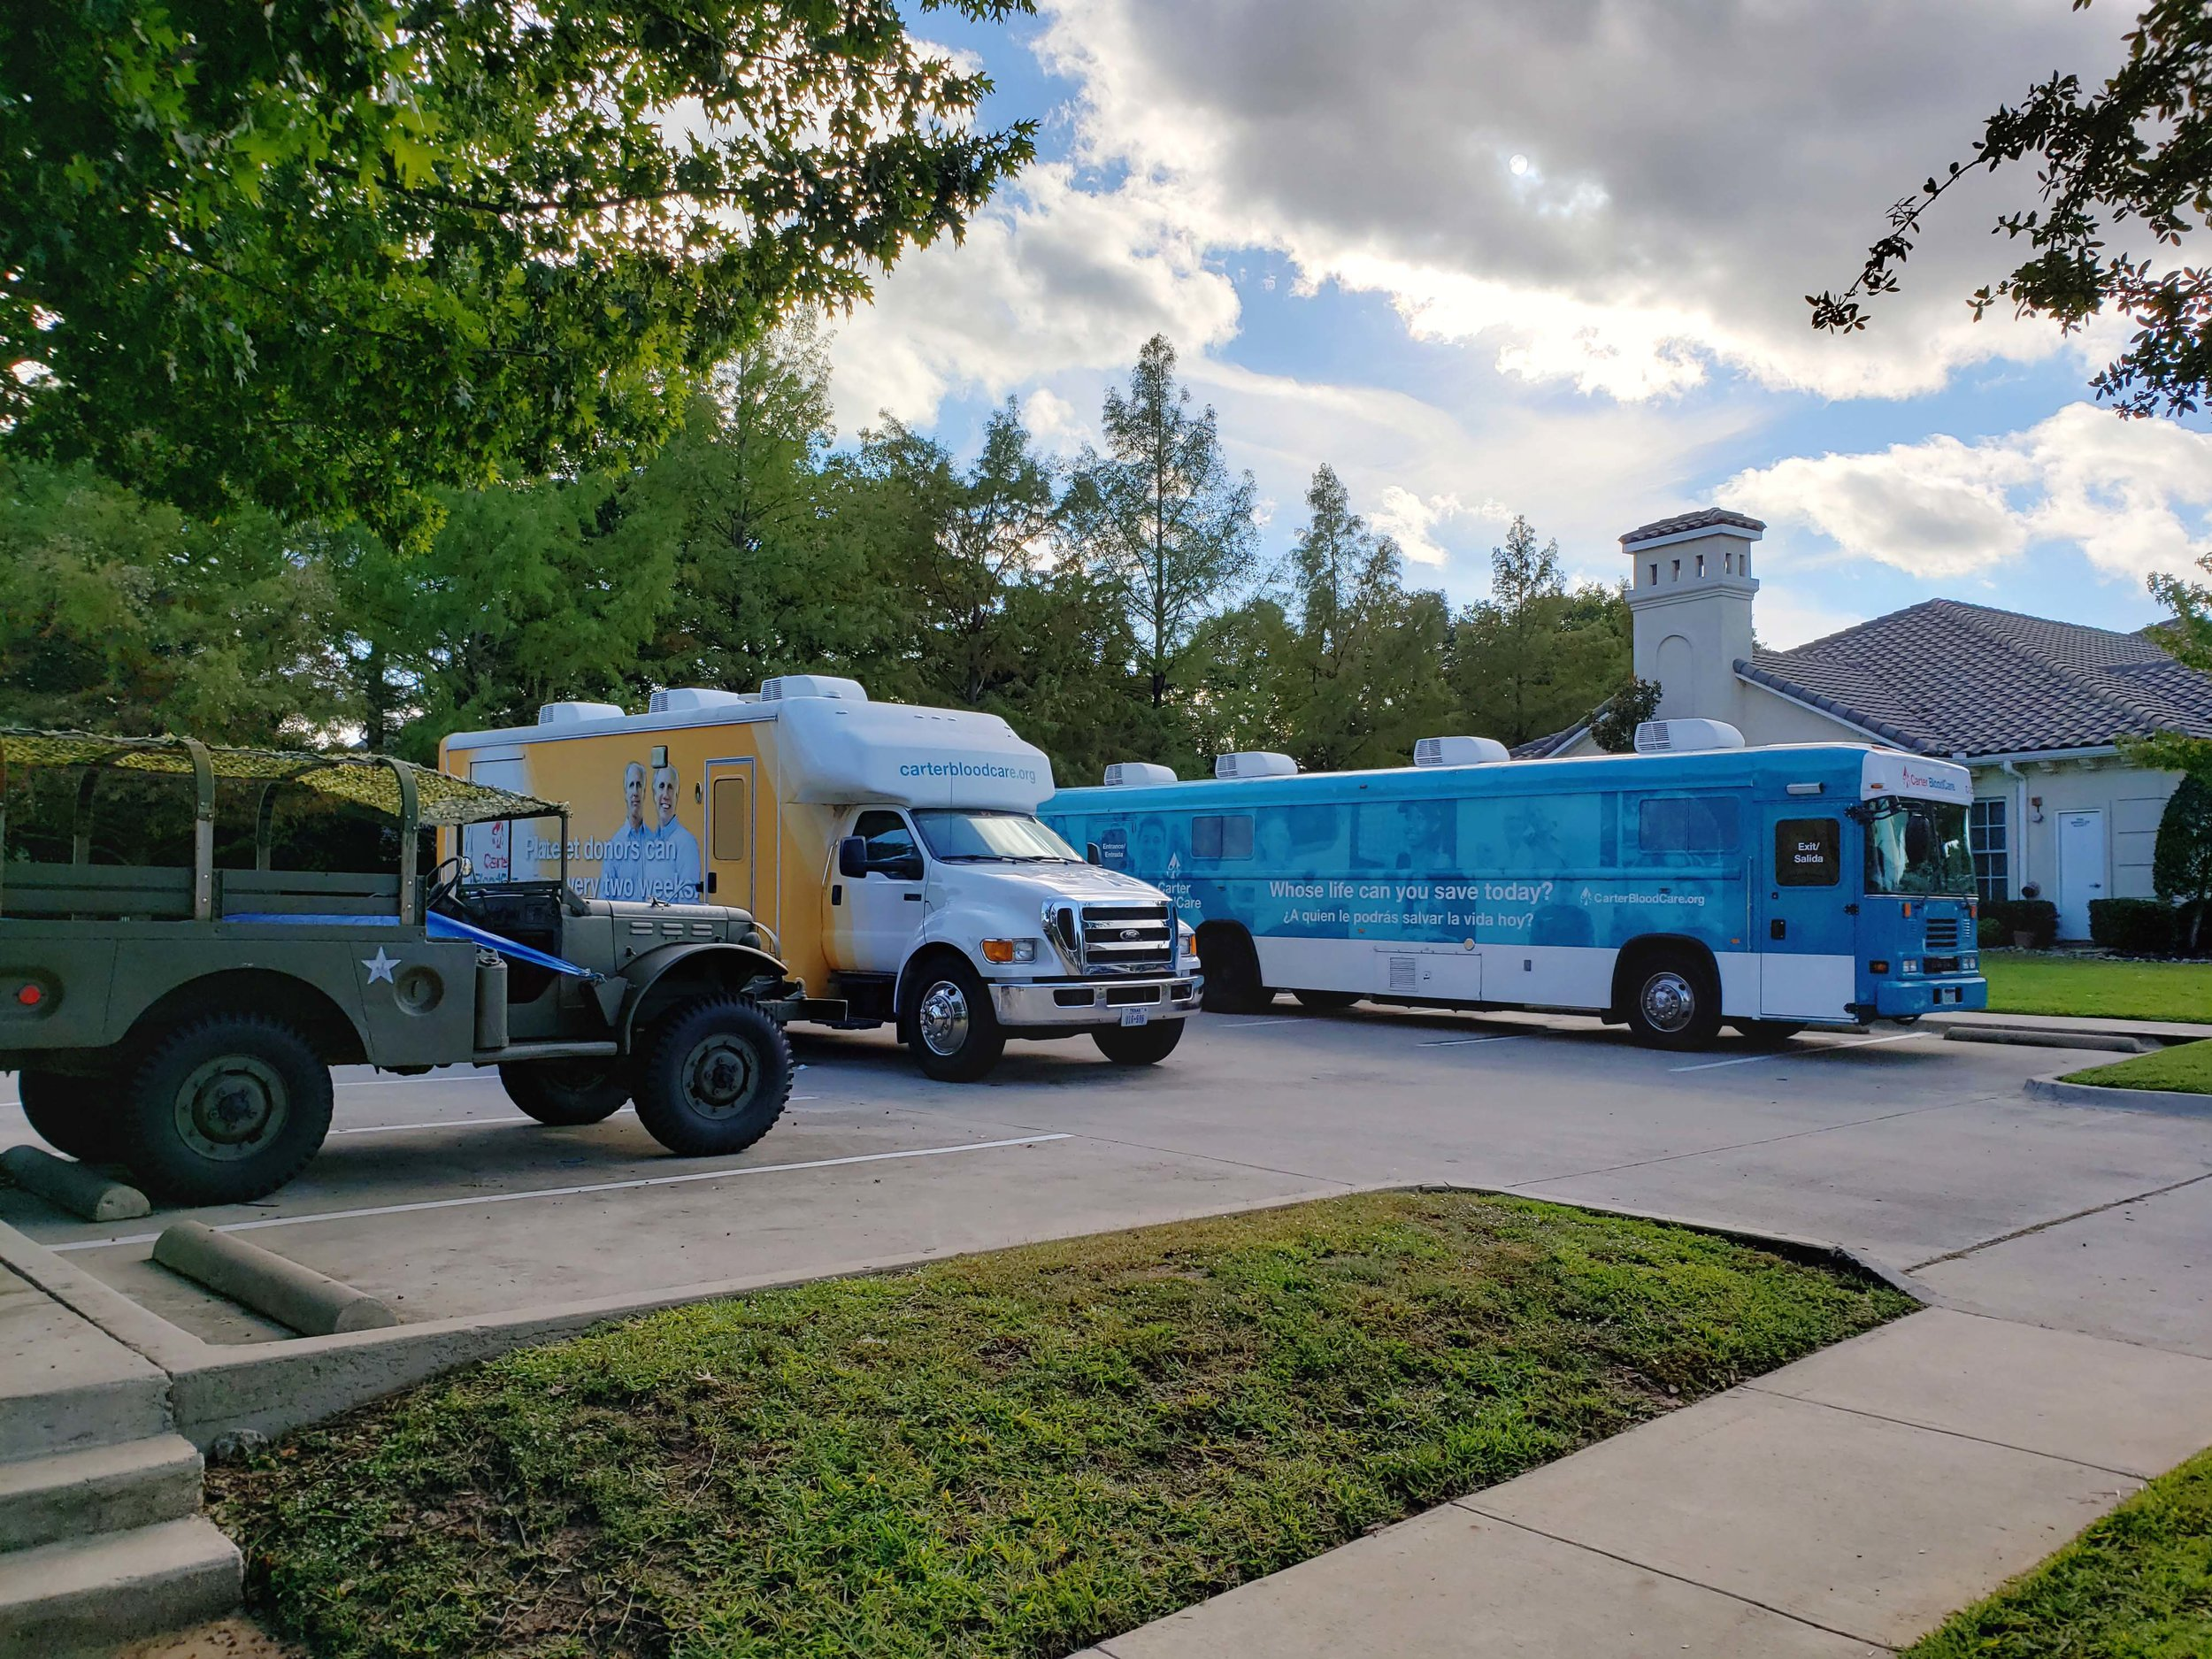 GiveBack-Blood-Drive-Carter-BloodCare-Buses.jpg